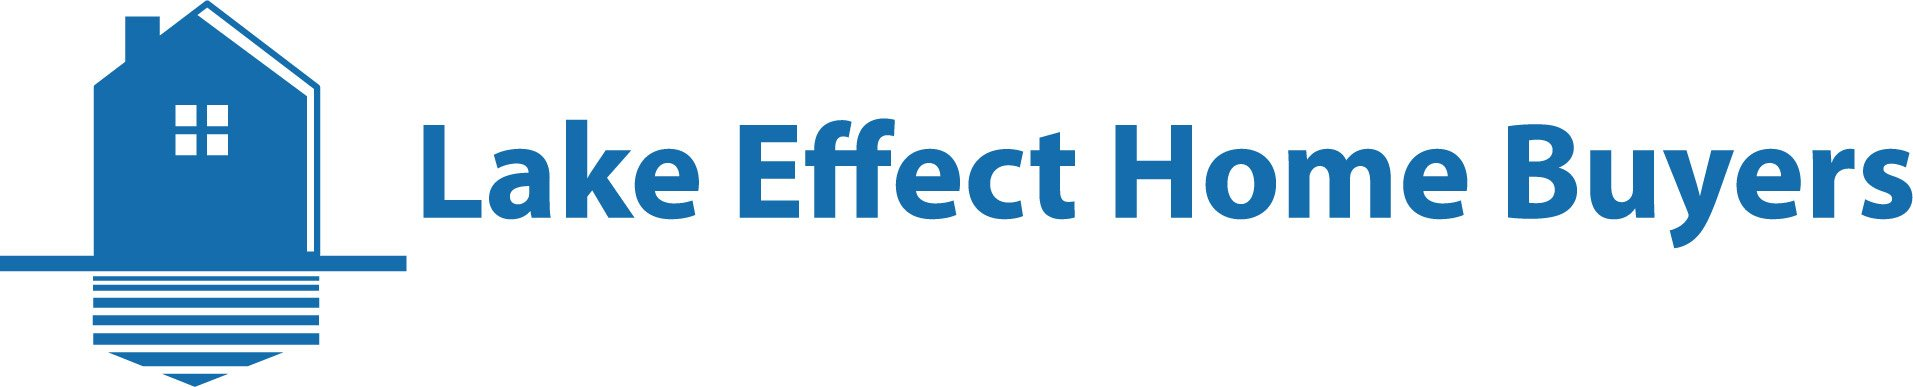 Lake Effect Home Buyers – Buyers Site logo